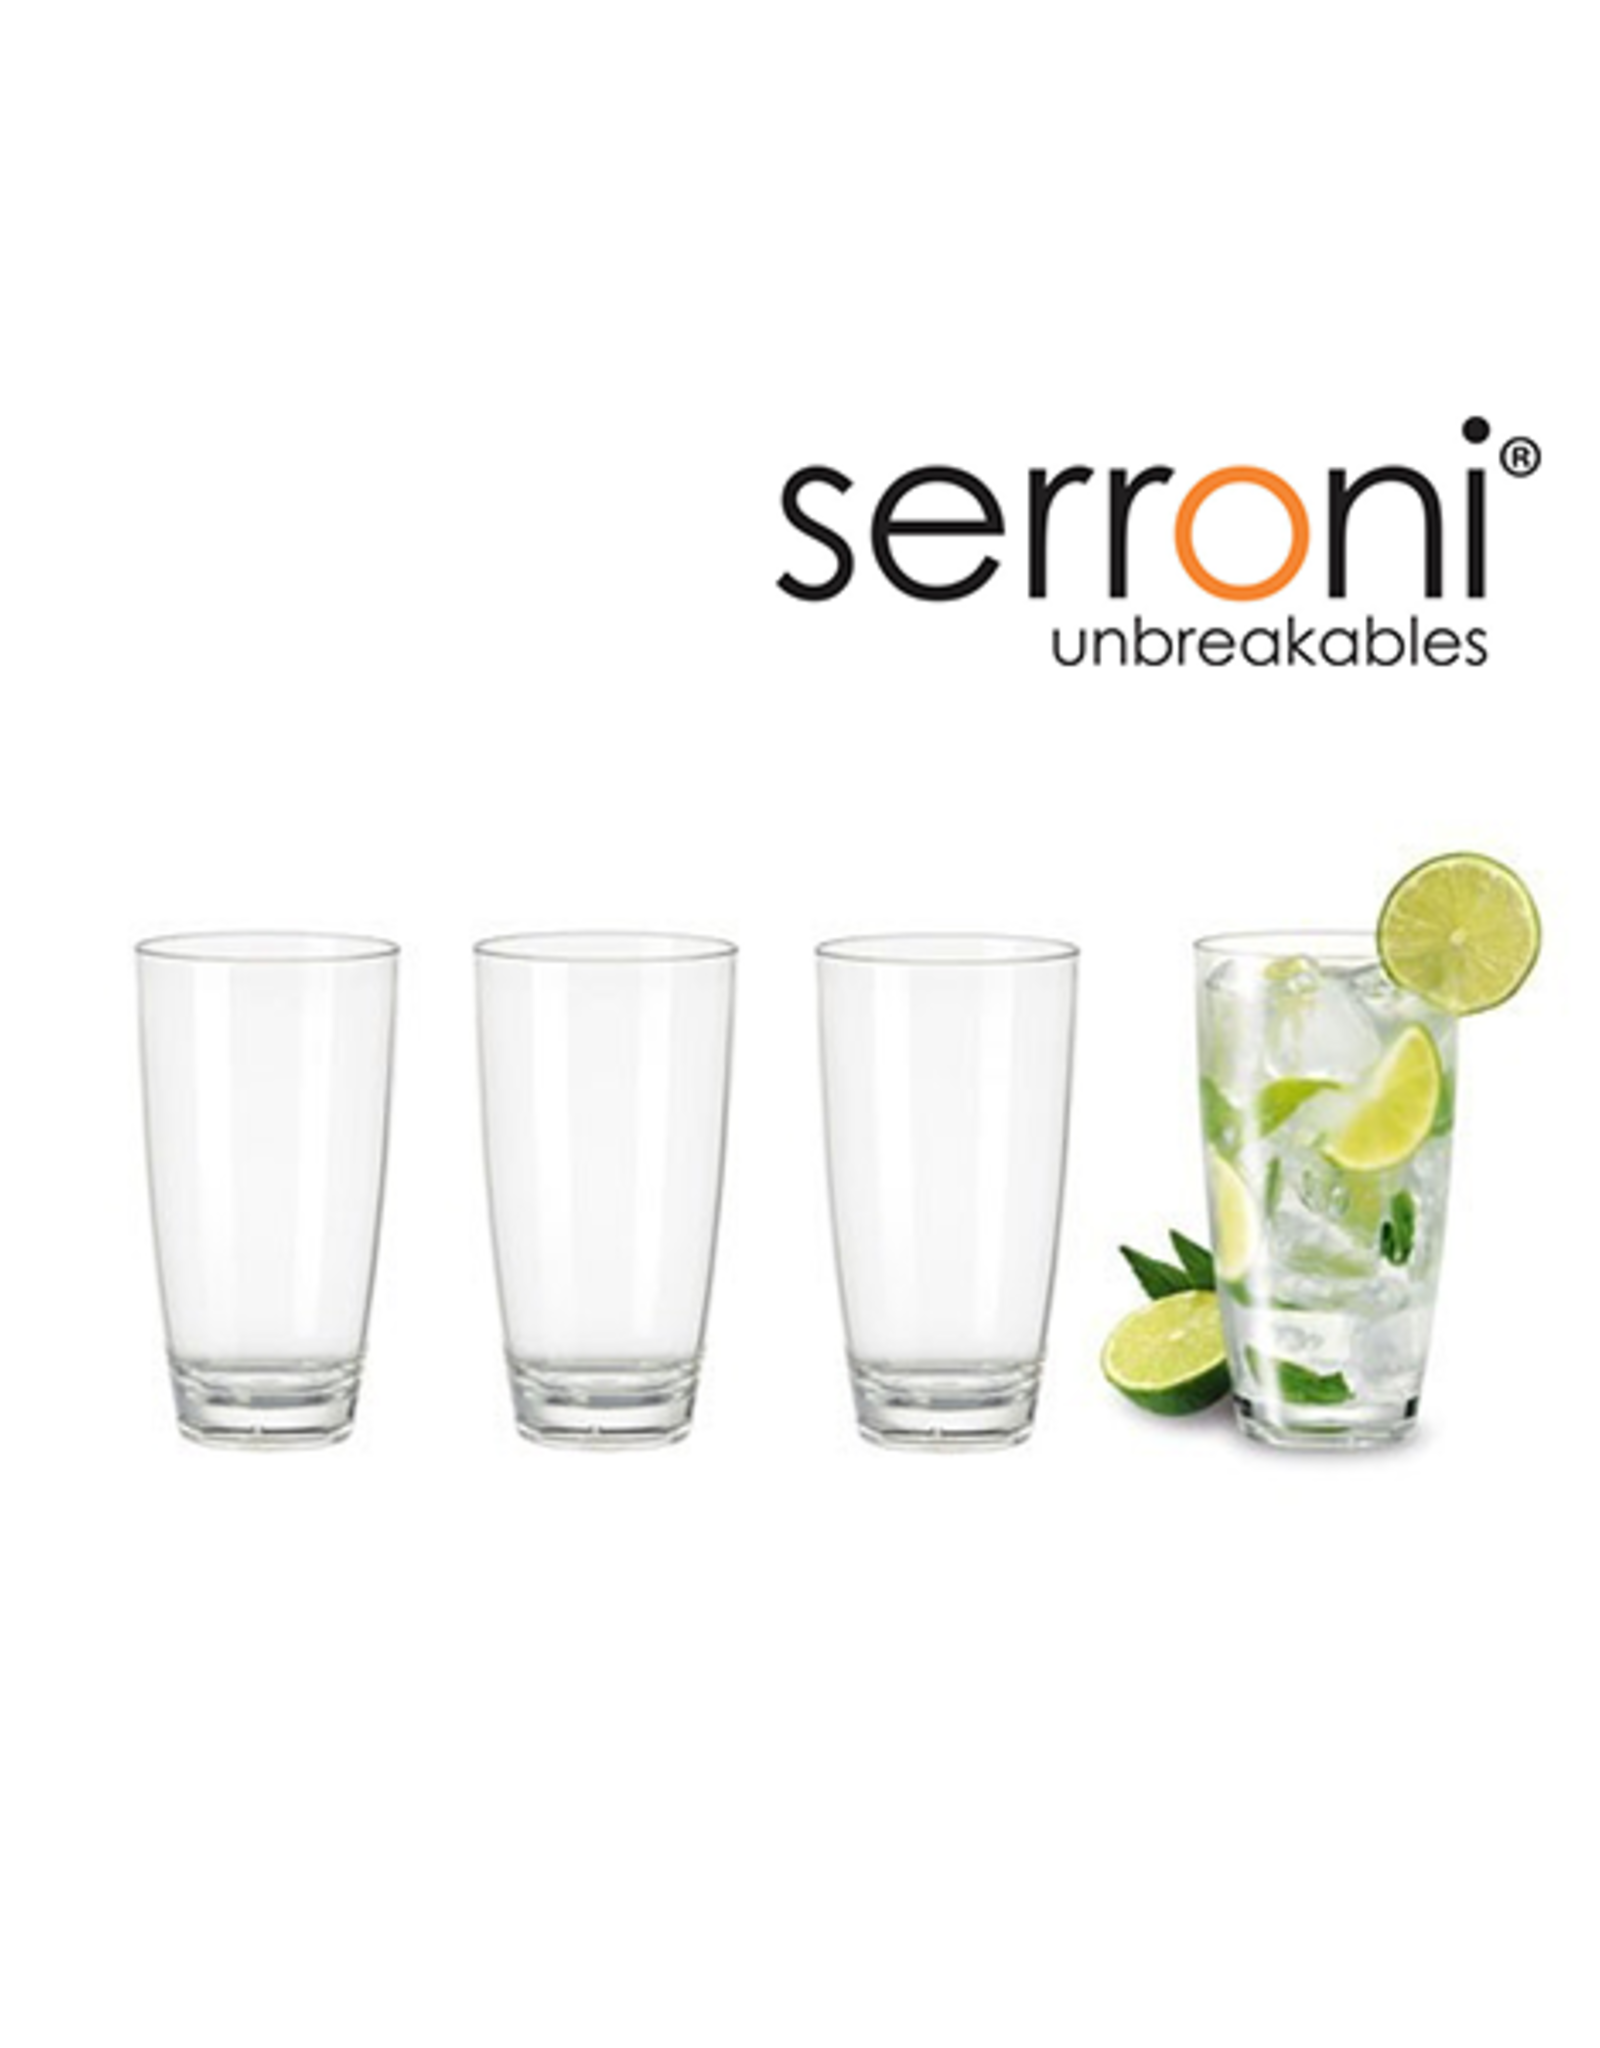 Serroni Unbreakable 4 Piece Tumbler Set